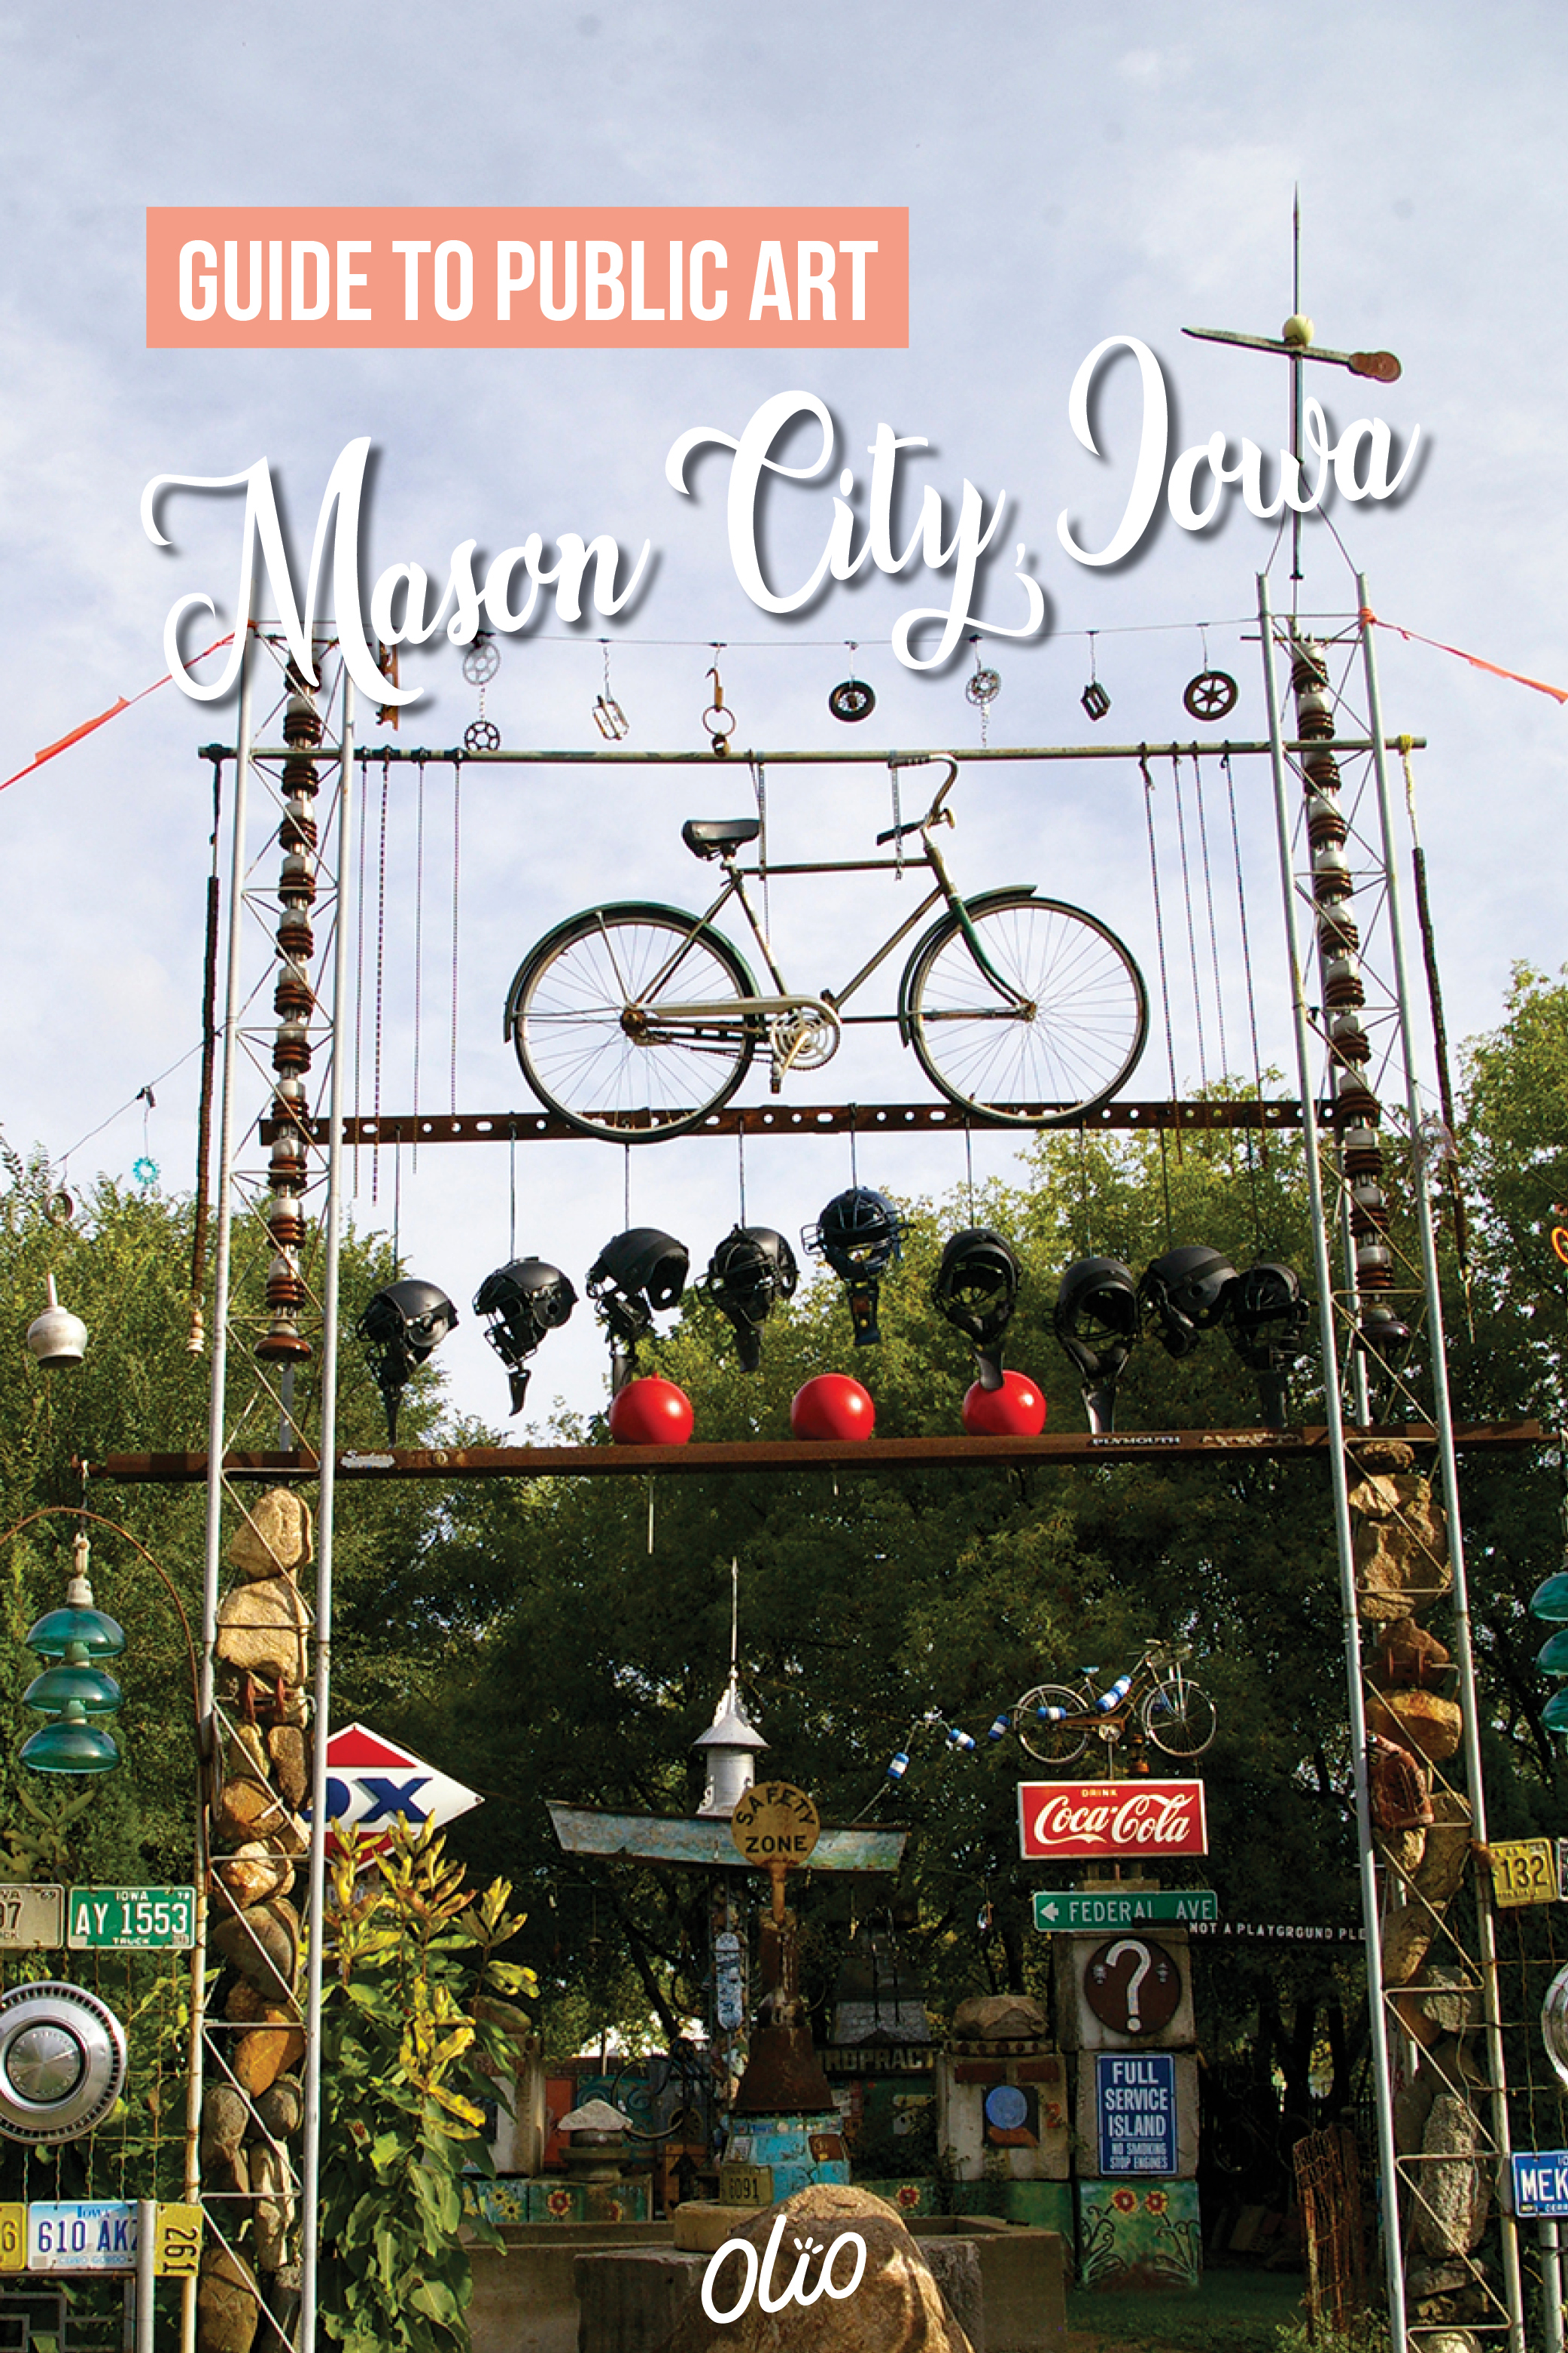 There are so many ways to experience art in Mason City, Iowa! From a renowned museum and expansive sculpture walk to vibrant murals and offbeat folk art, there's something for everyone to see when you travel to this north Iowa community. #Iowa #MasonCity #publicart